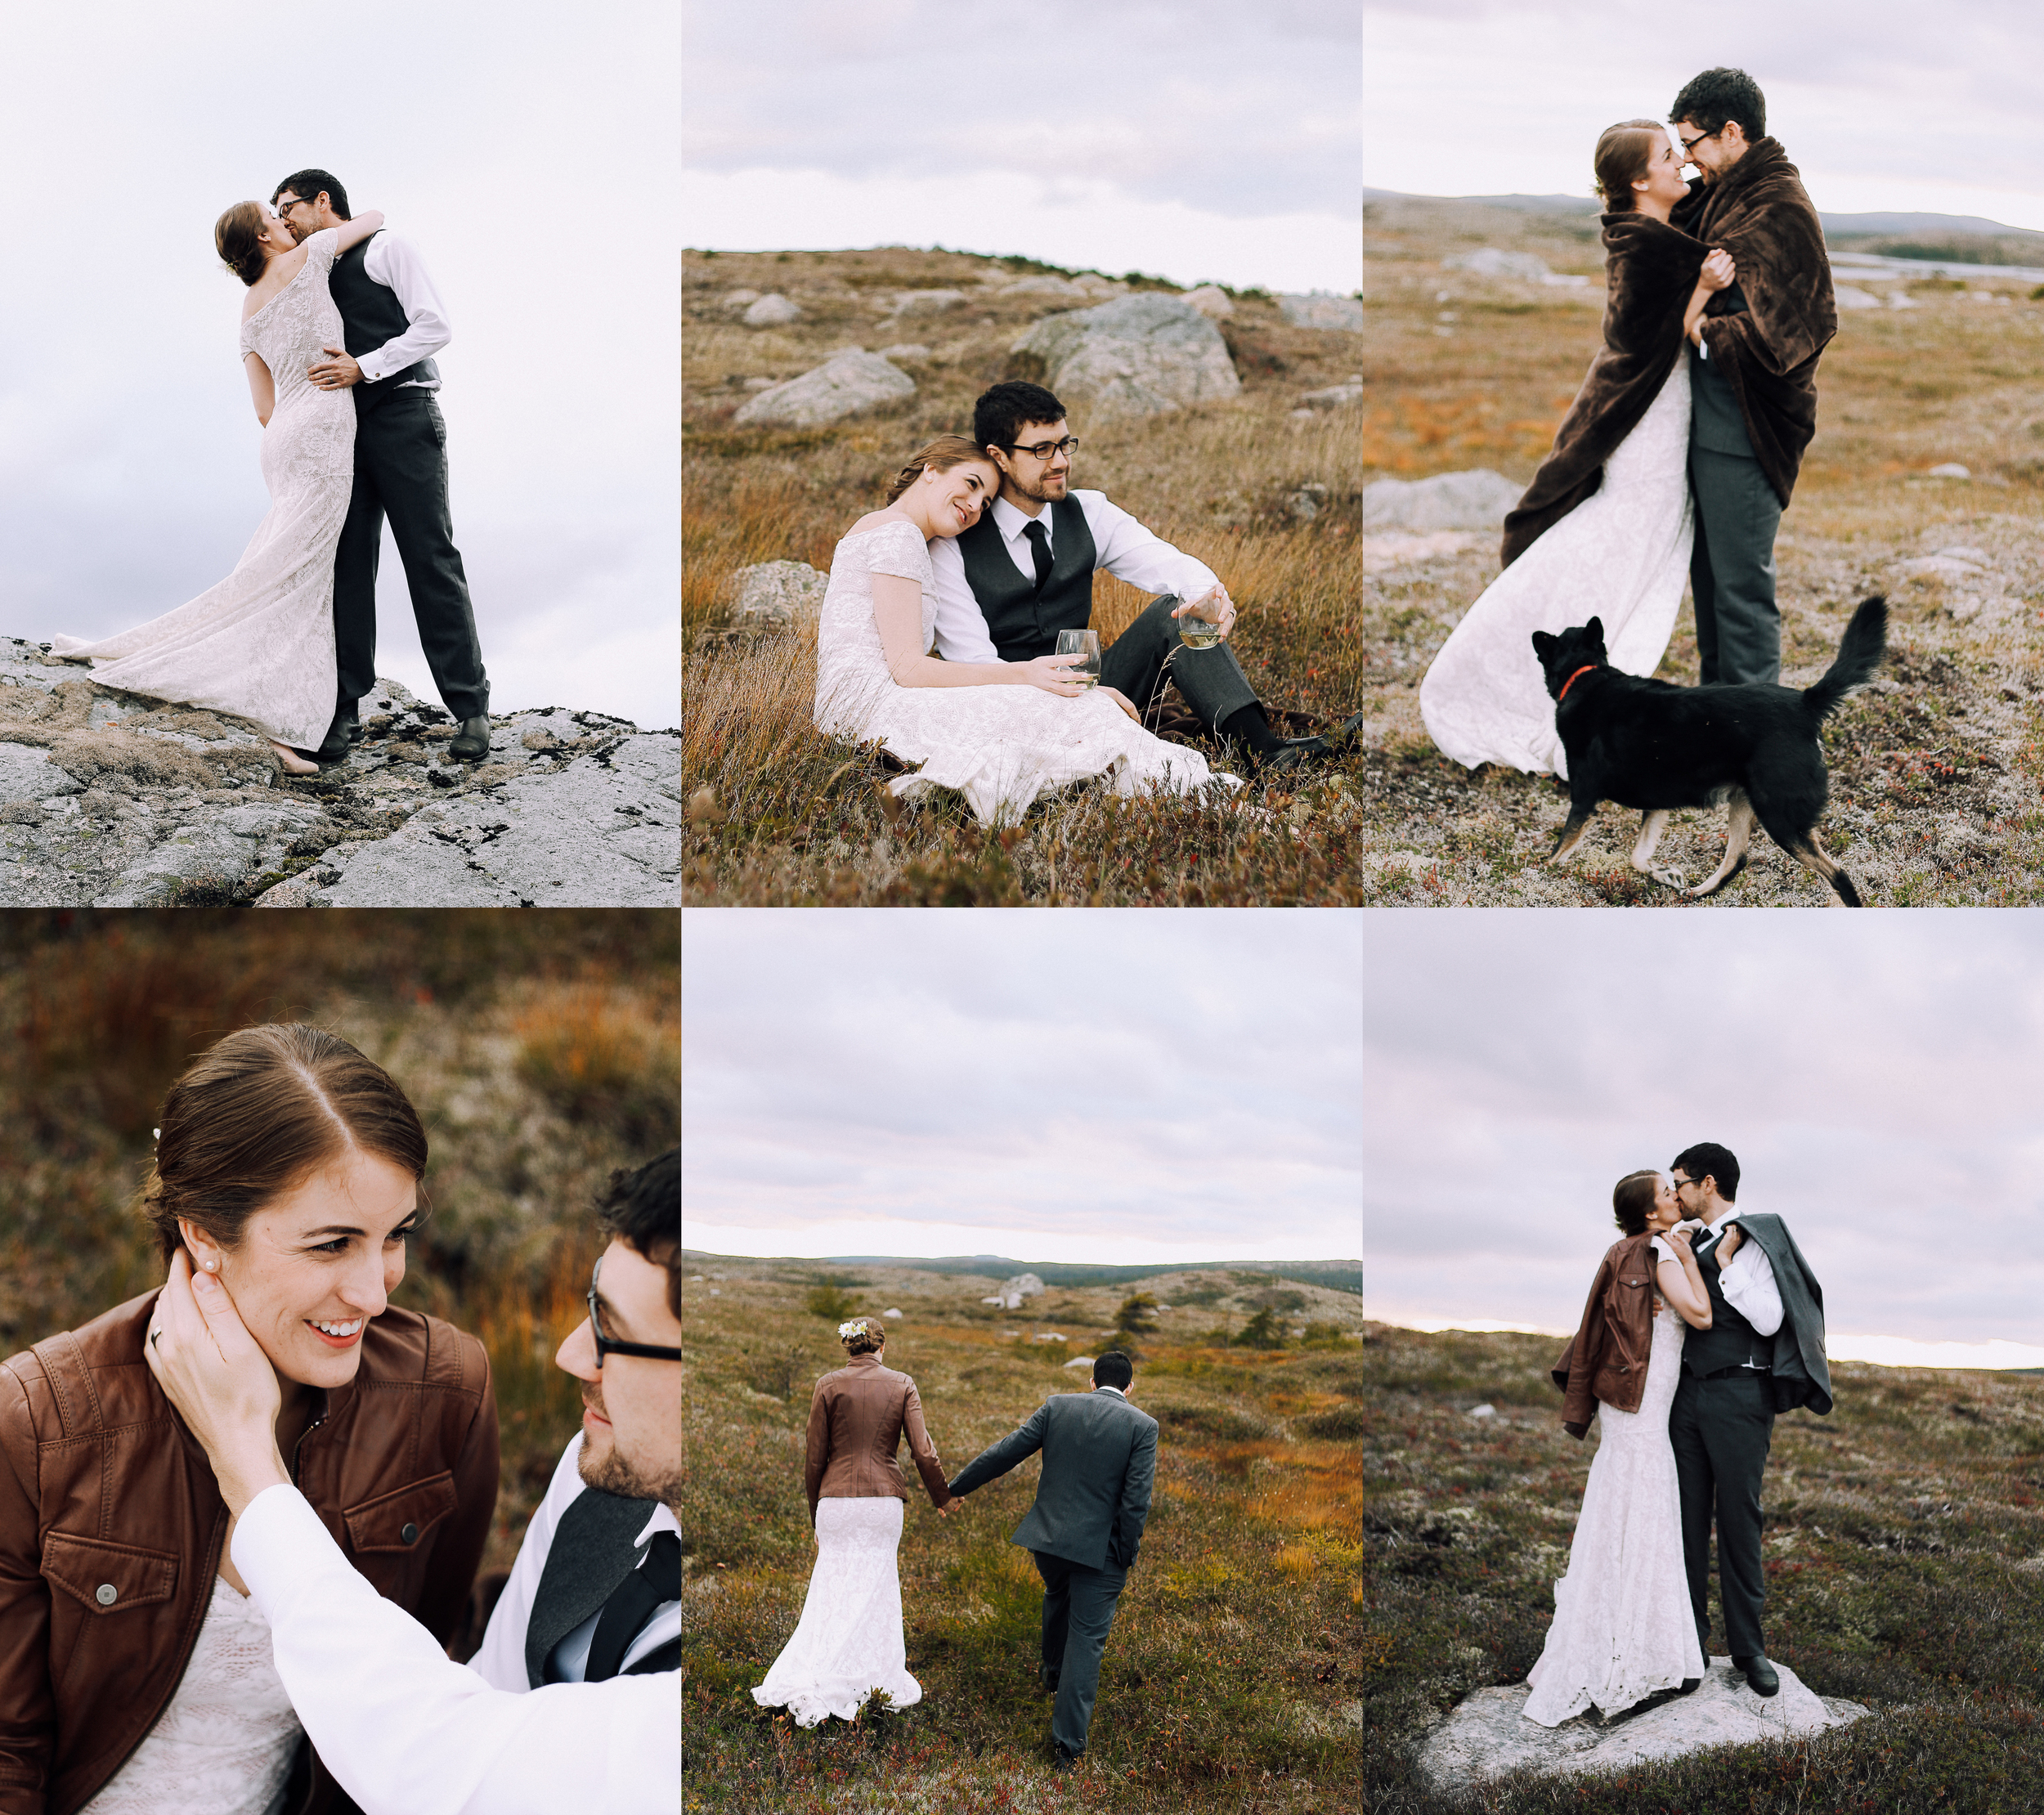 DANNI & ZACK / OCTOBER 2015 / ST. JOHN'S + THE BARRENS, NL